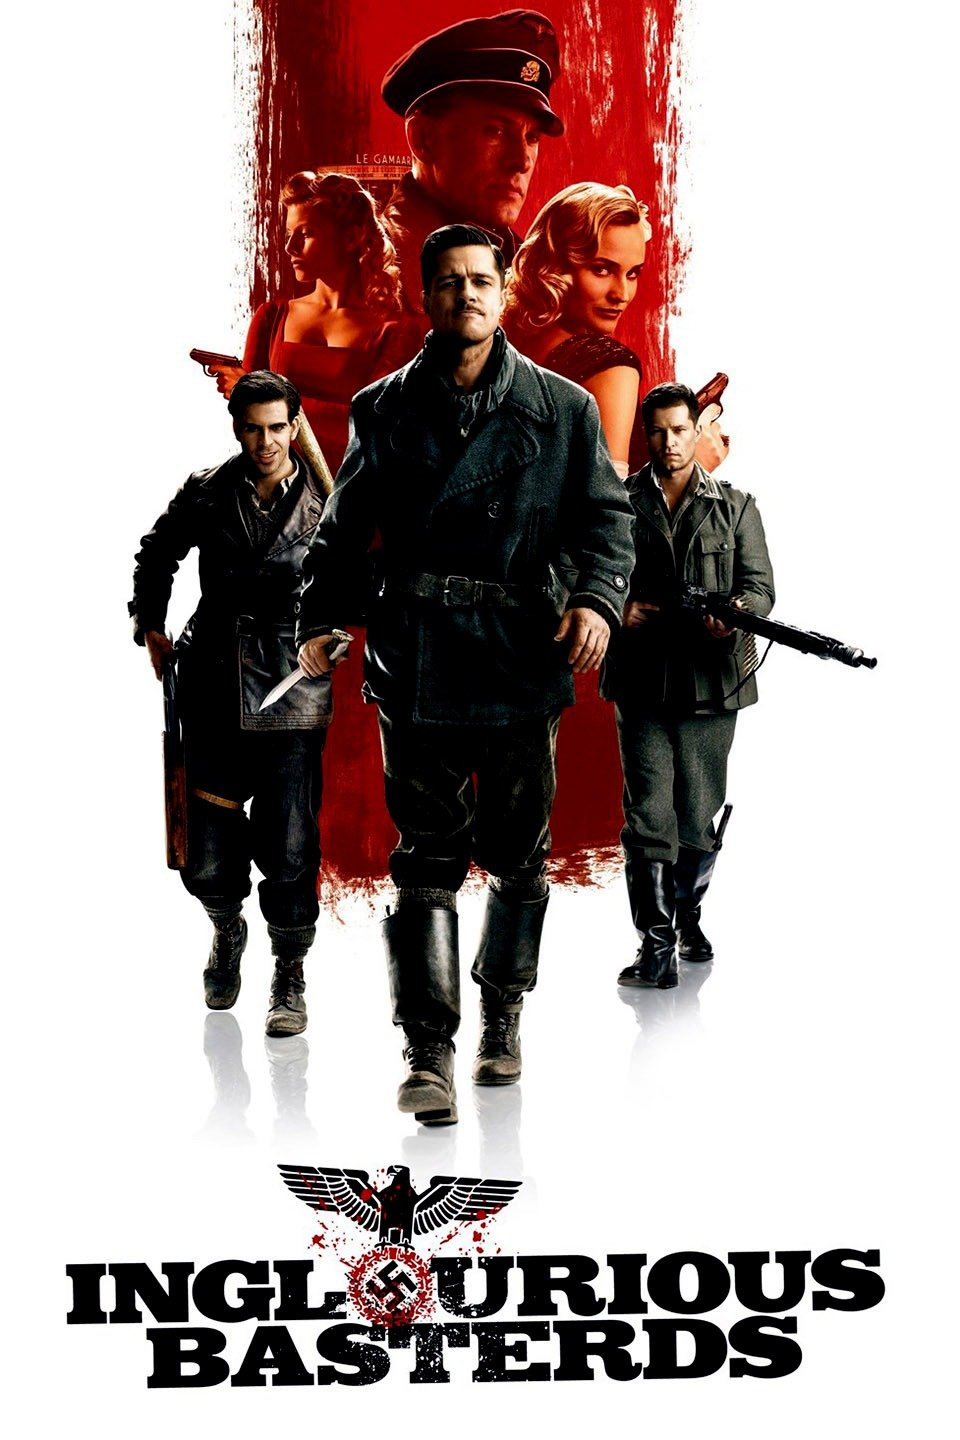 Inglourious Basterds (2009) - Directed by: Quentin TarantinoStarring: Brad Pitt, Christoph Waltz, Michael Fassbender, Diane Kruger, Melanie Laurent, Eli Roth, Til Schweiger, Daniel BruhlRated: R for Strong Graphic Violence, Language and Brief SexualityRunning Time: 2h 33mTMM Score: 5 StarsSTRENGTHS: EverythingWEAKNESSES: -